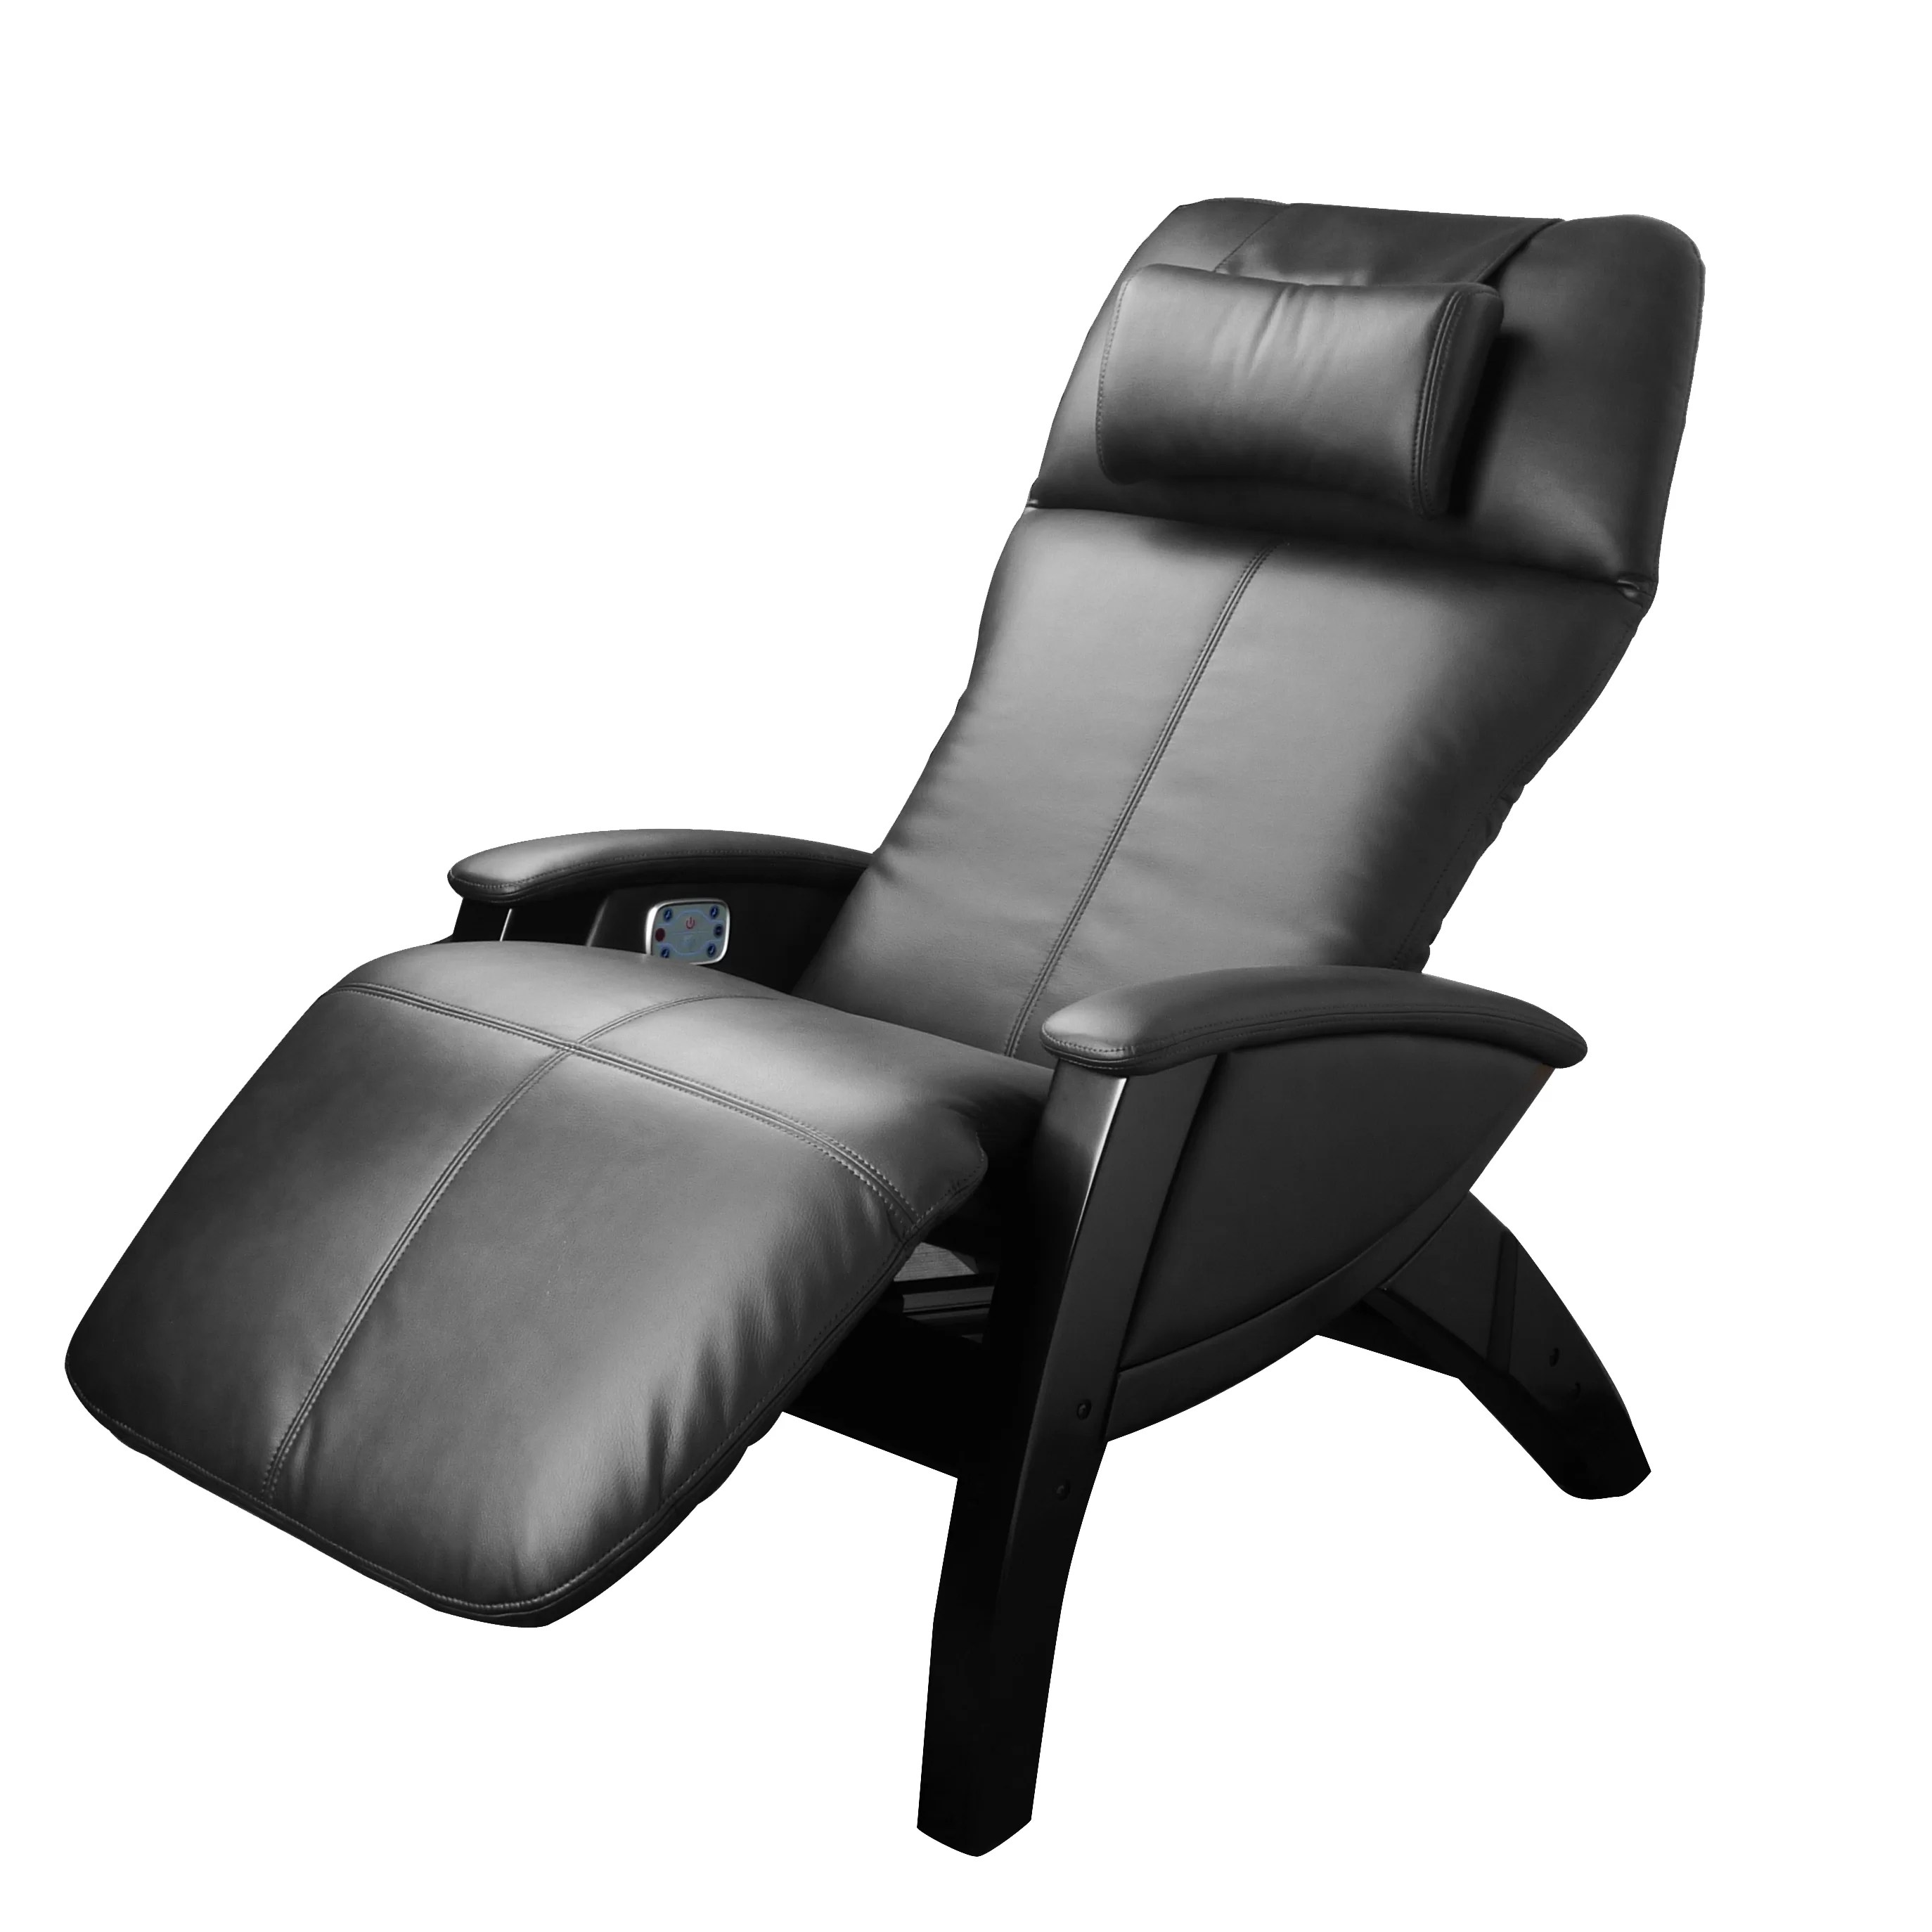 Svago Chair Cozzia Dual Power Zero Gravity Recliner Wayfair